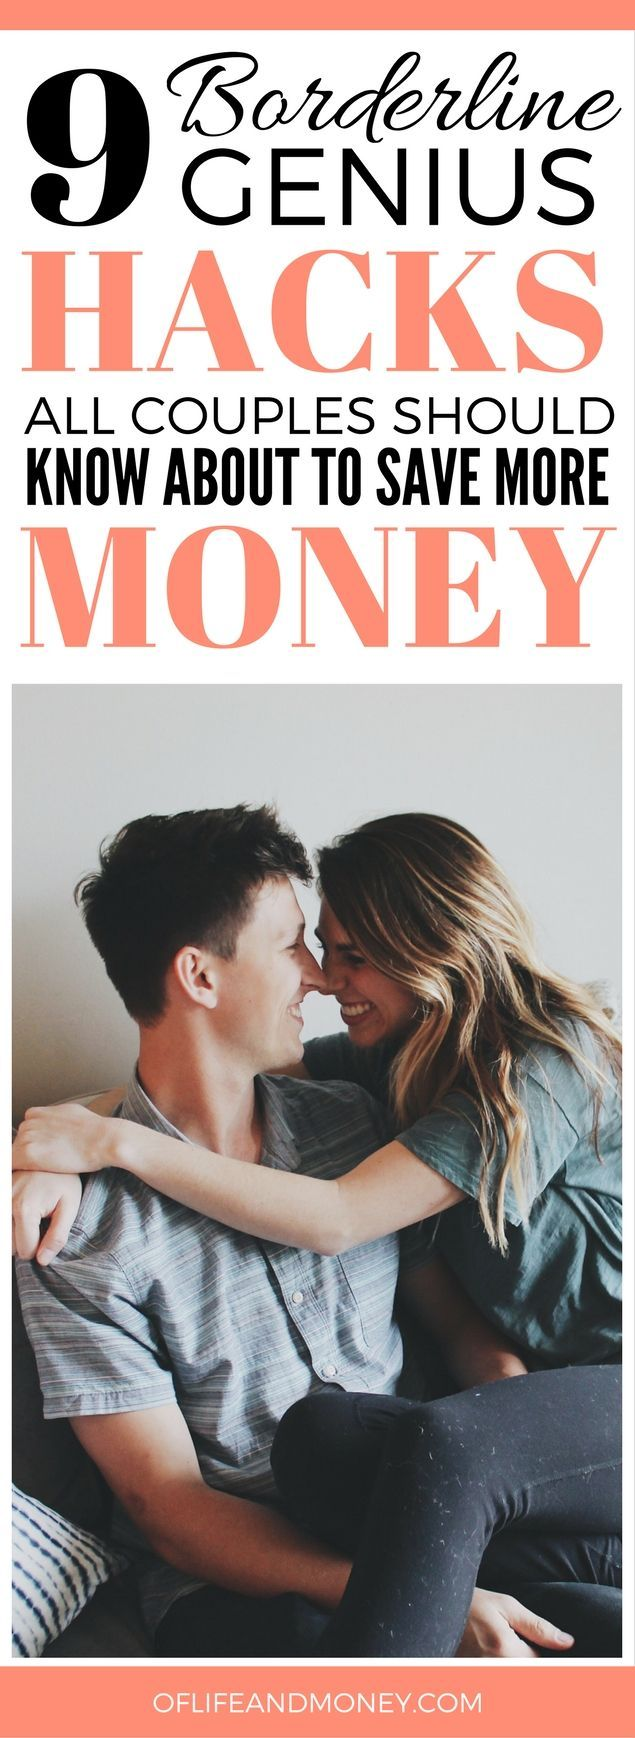 If you're in a relationship, then these money saving tips are need to know. Save money and maximize your income every month by reading this post. #money #personalfinance #couplesgoals #advice